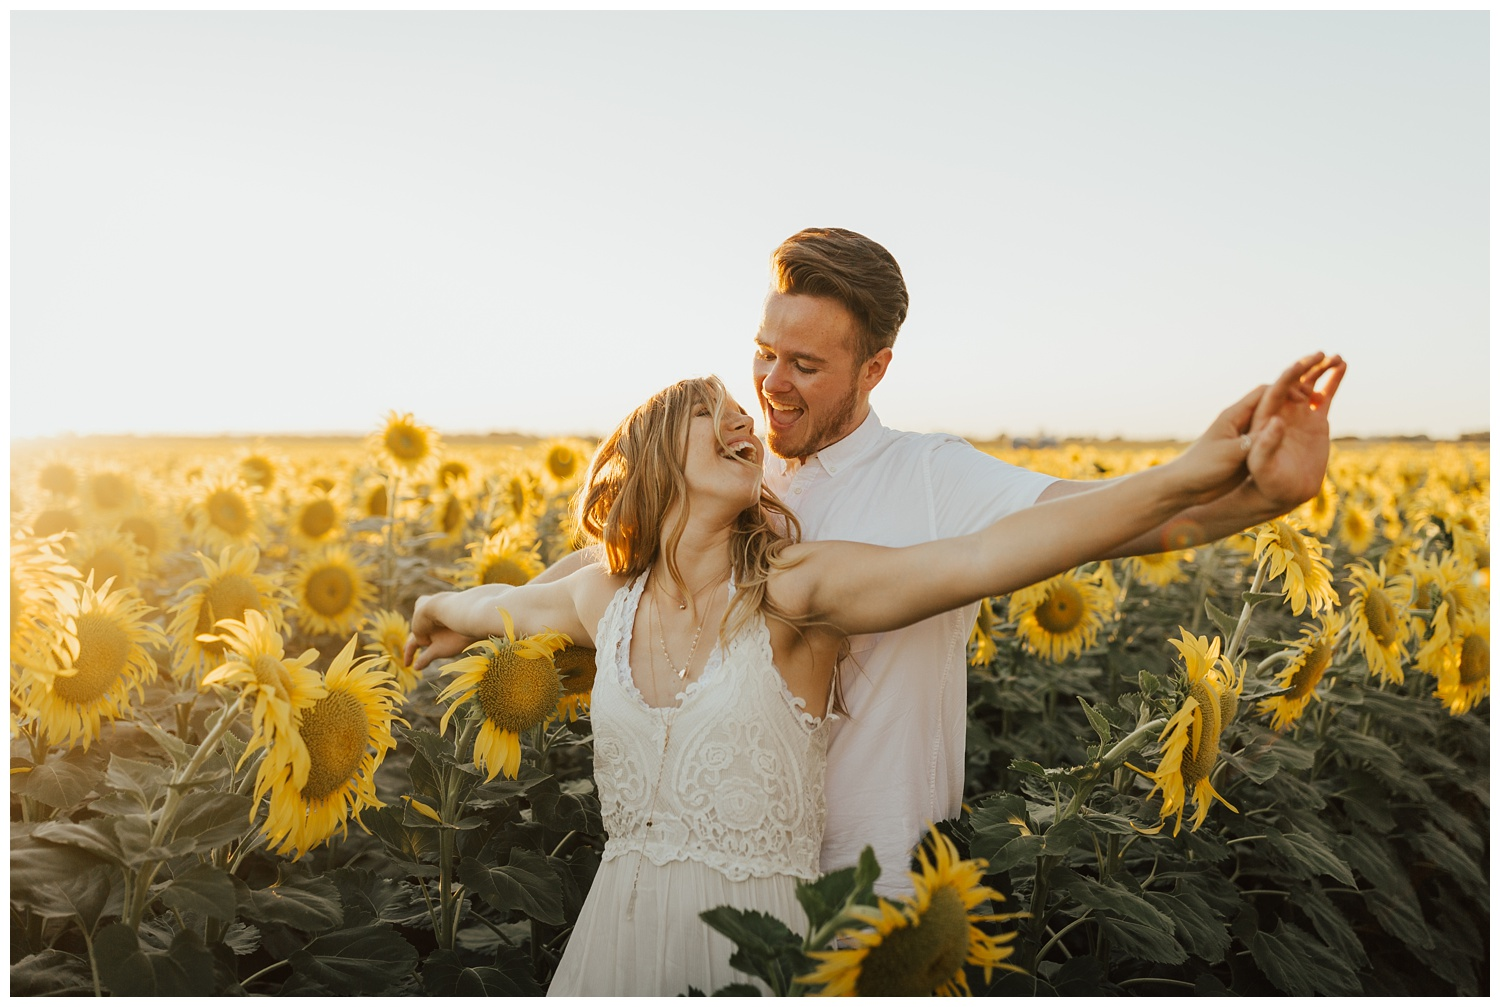 Meg's Marvels Photography - Dixon Sunflower Engagement - Sacramento Wedding Photographer_0461.jpg